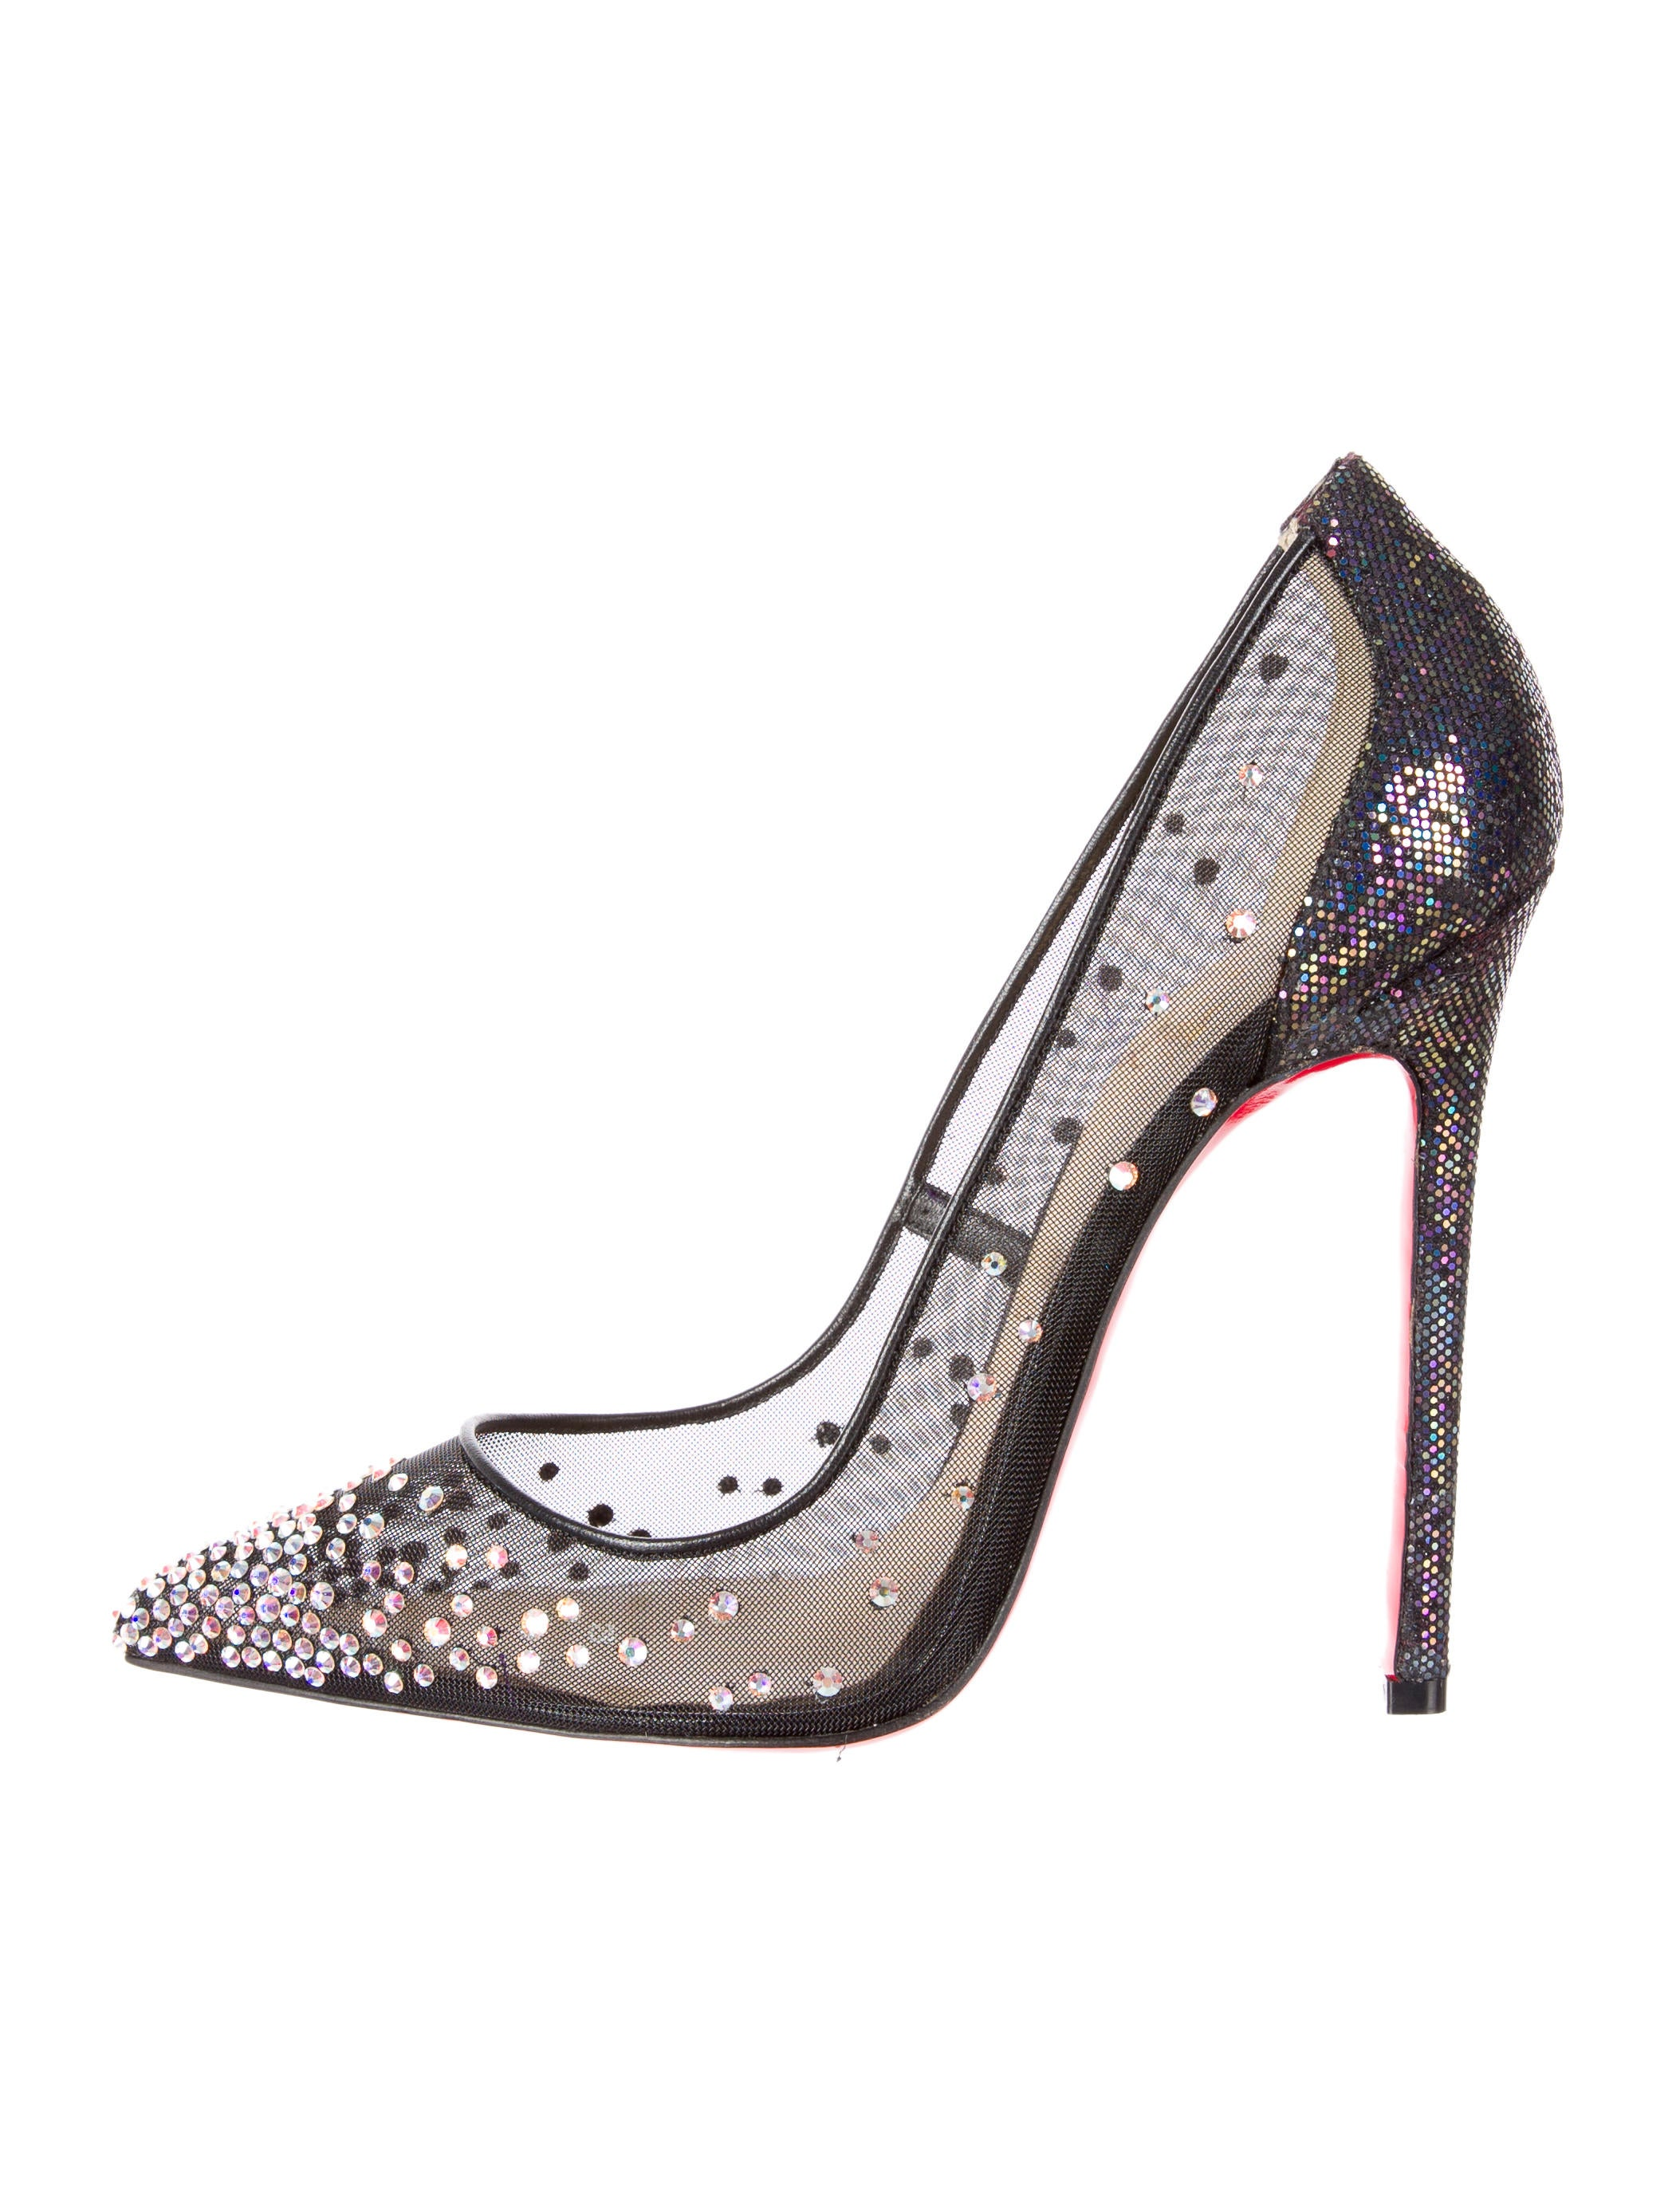 quality design 230e2 c47f0 Artesur » christian louboutin Follies Strass pumps Black ...